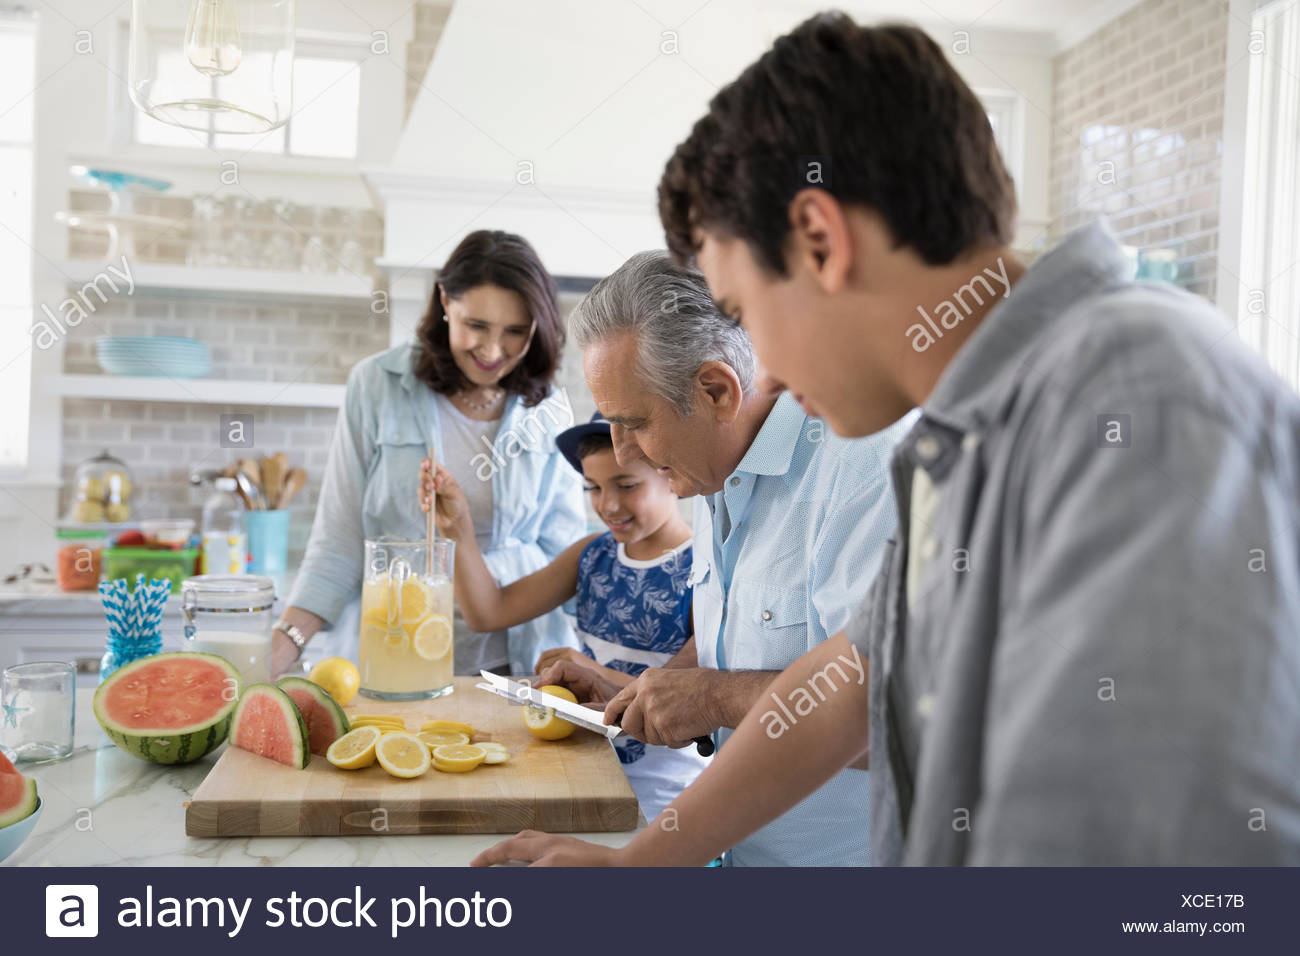 Multi-generation family making lemonade in kitchen - Stock Image